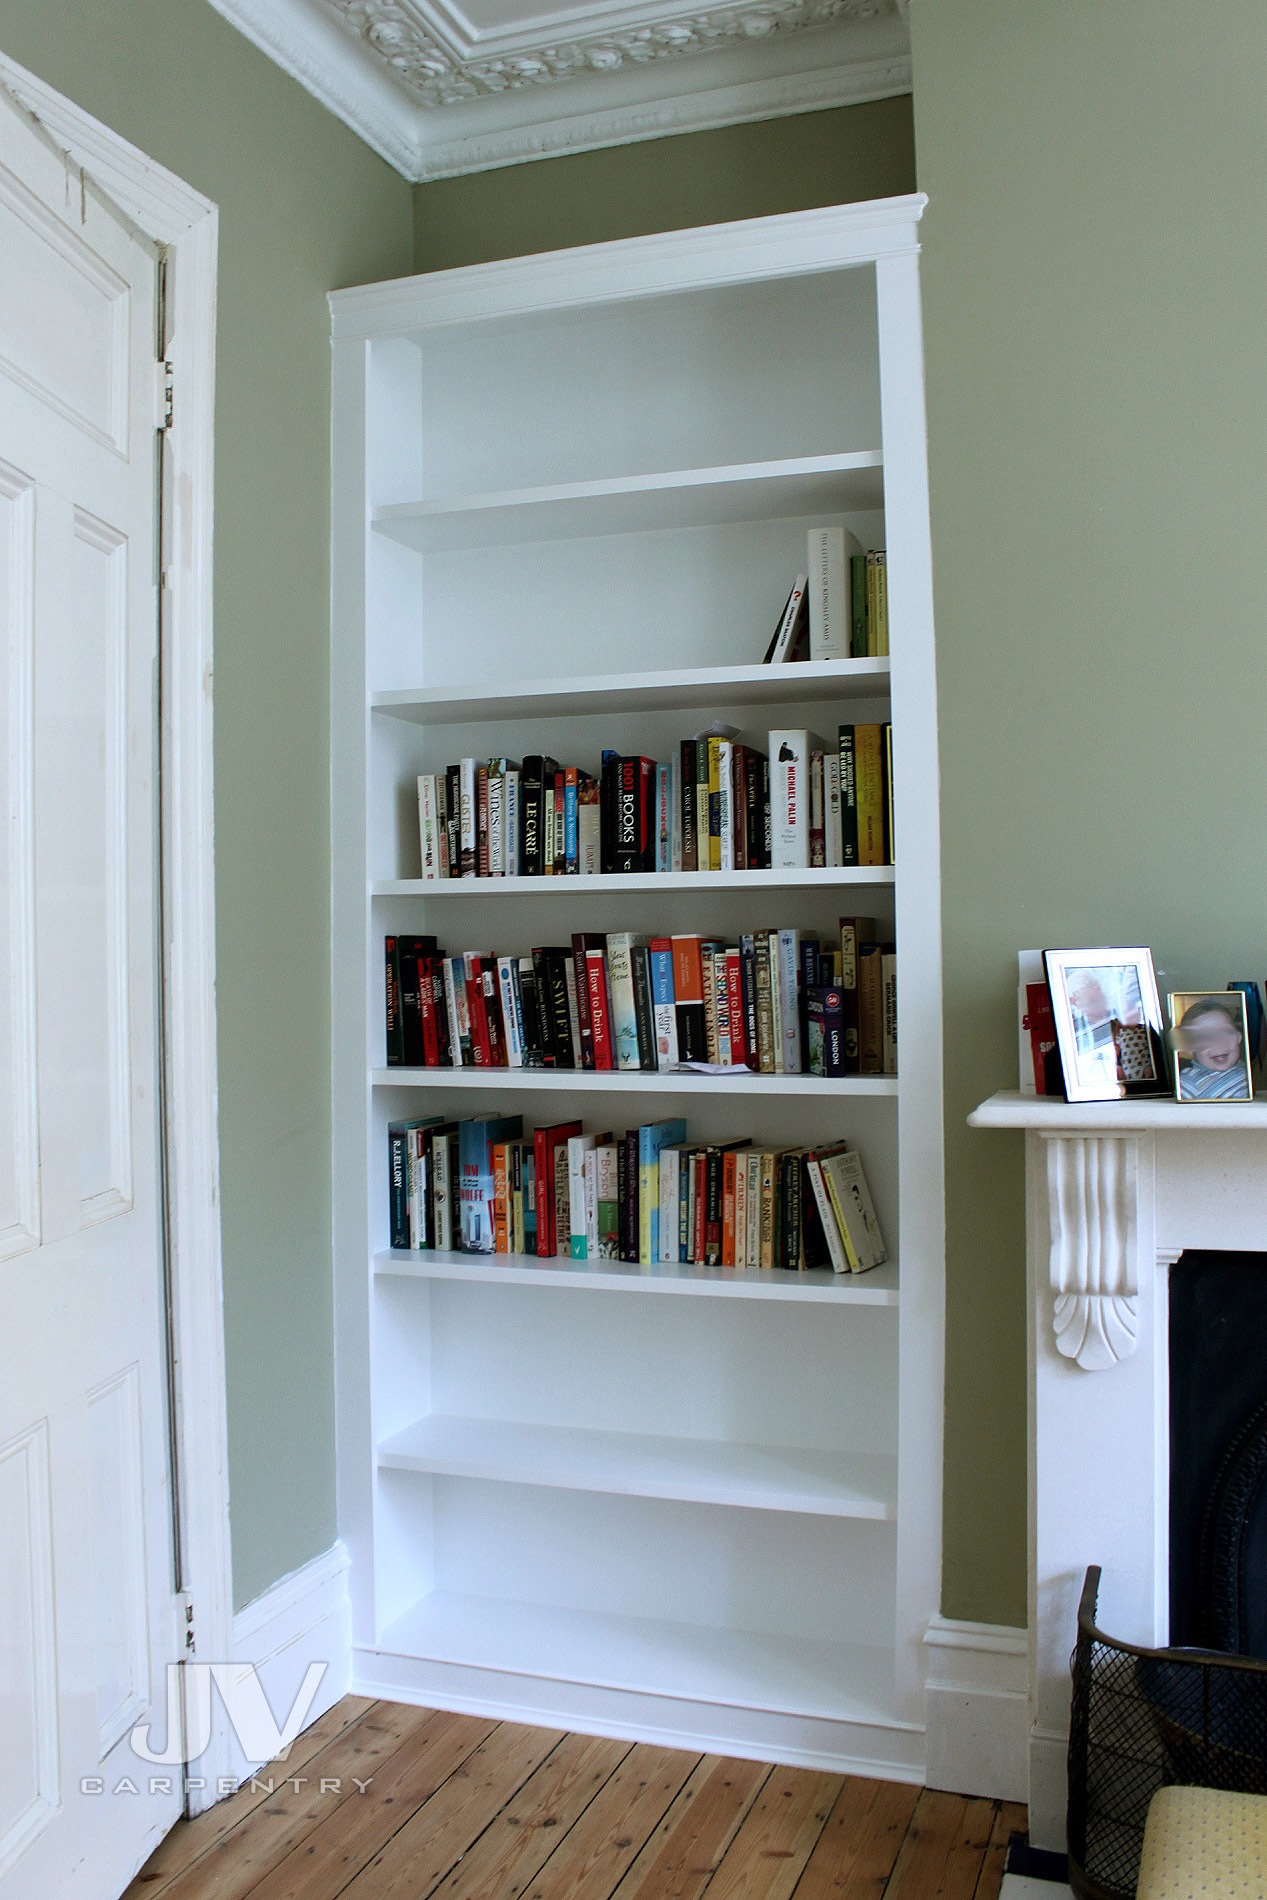 shelving alcove unit with shelves from top to bottom